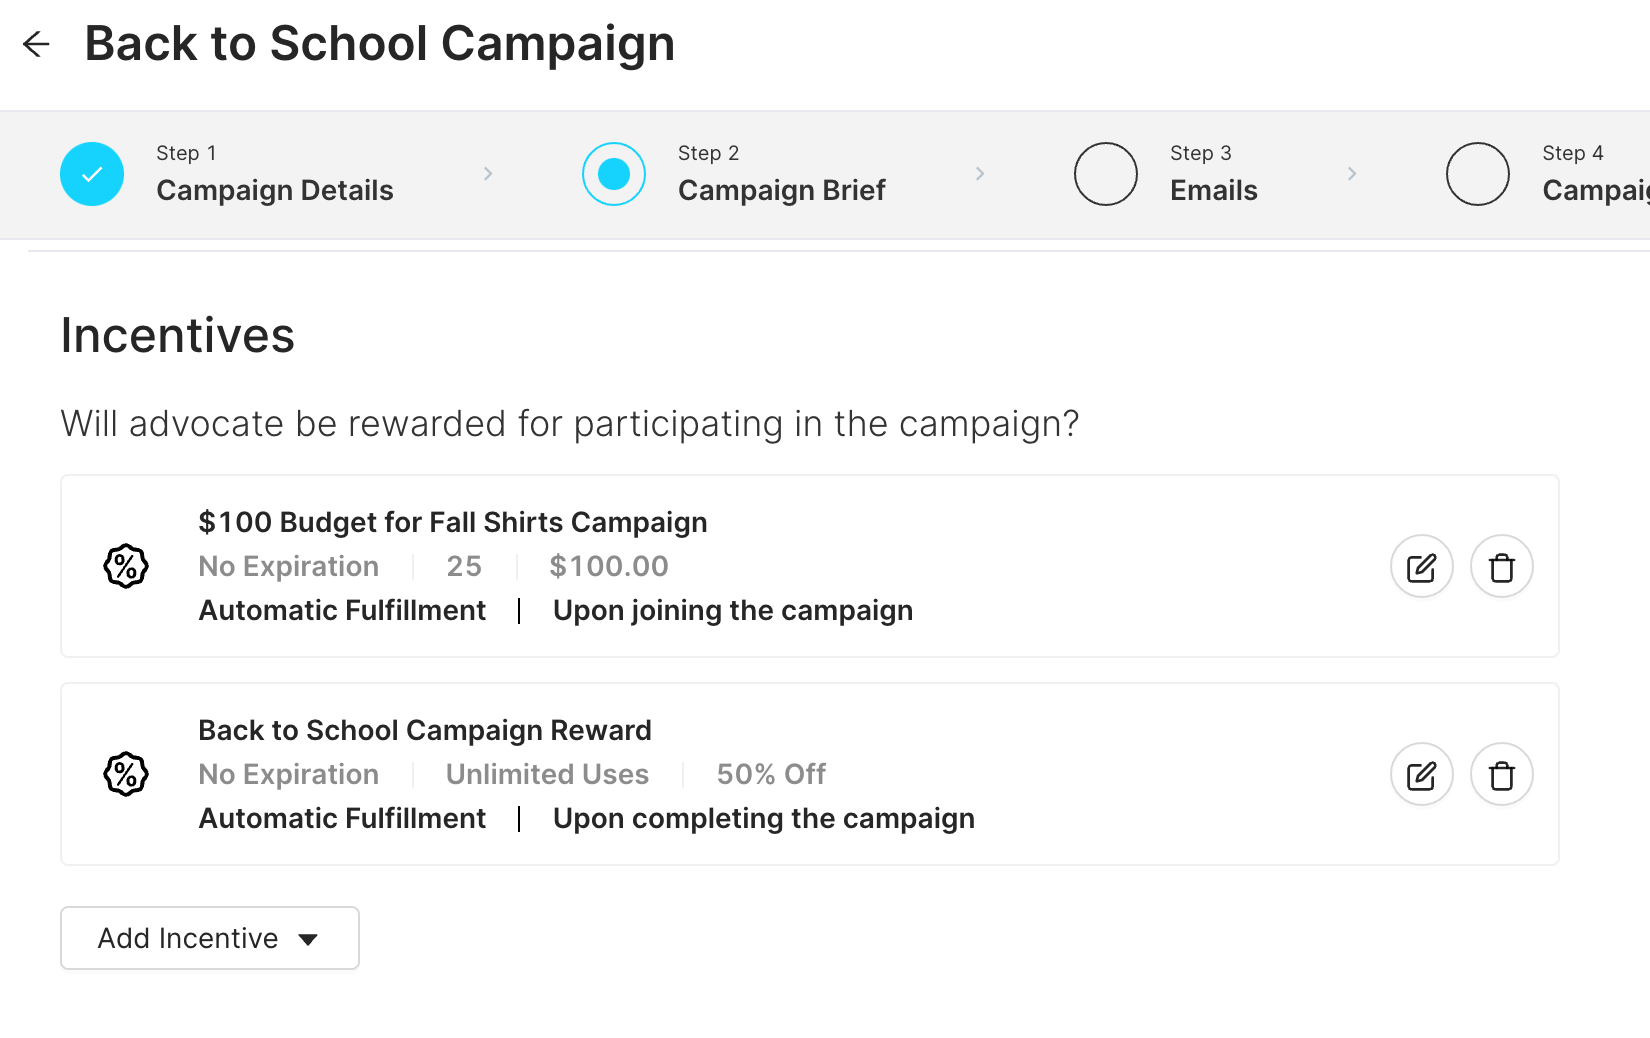 Offer incentives for joining a campaign, completing a campaign, or both!